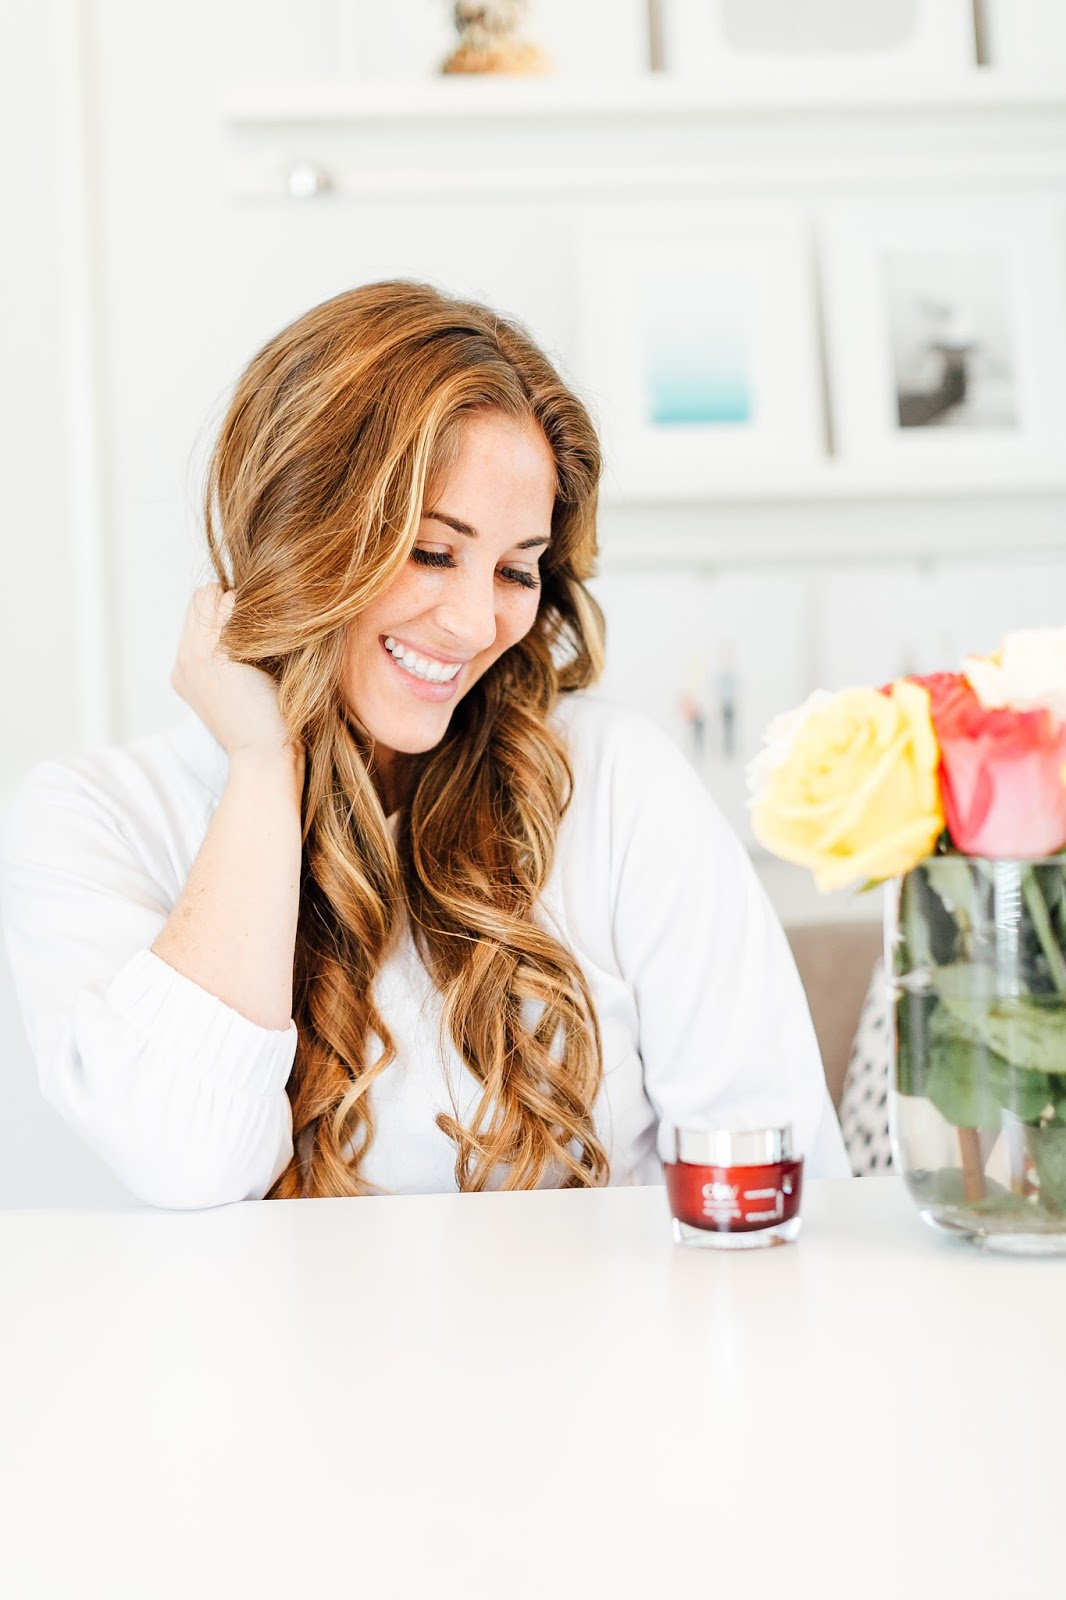 The Best Anti Wrinkle Cream that Makes Me Look & Feel Like I'm in My 20's Again by popular blogger Laura of Walking in Memphis in High Heels